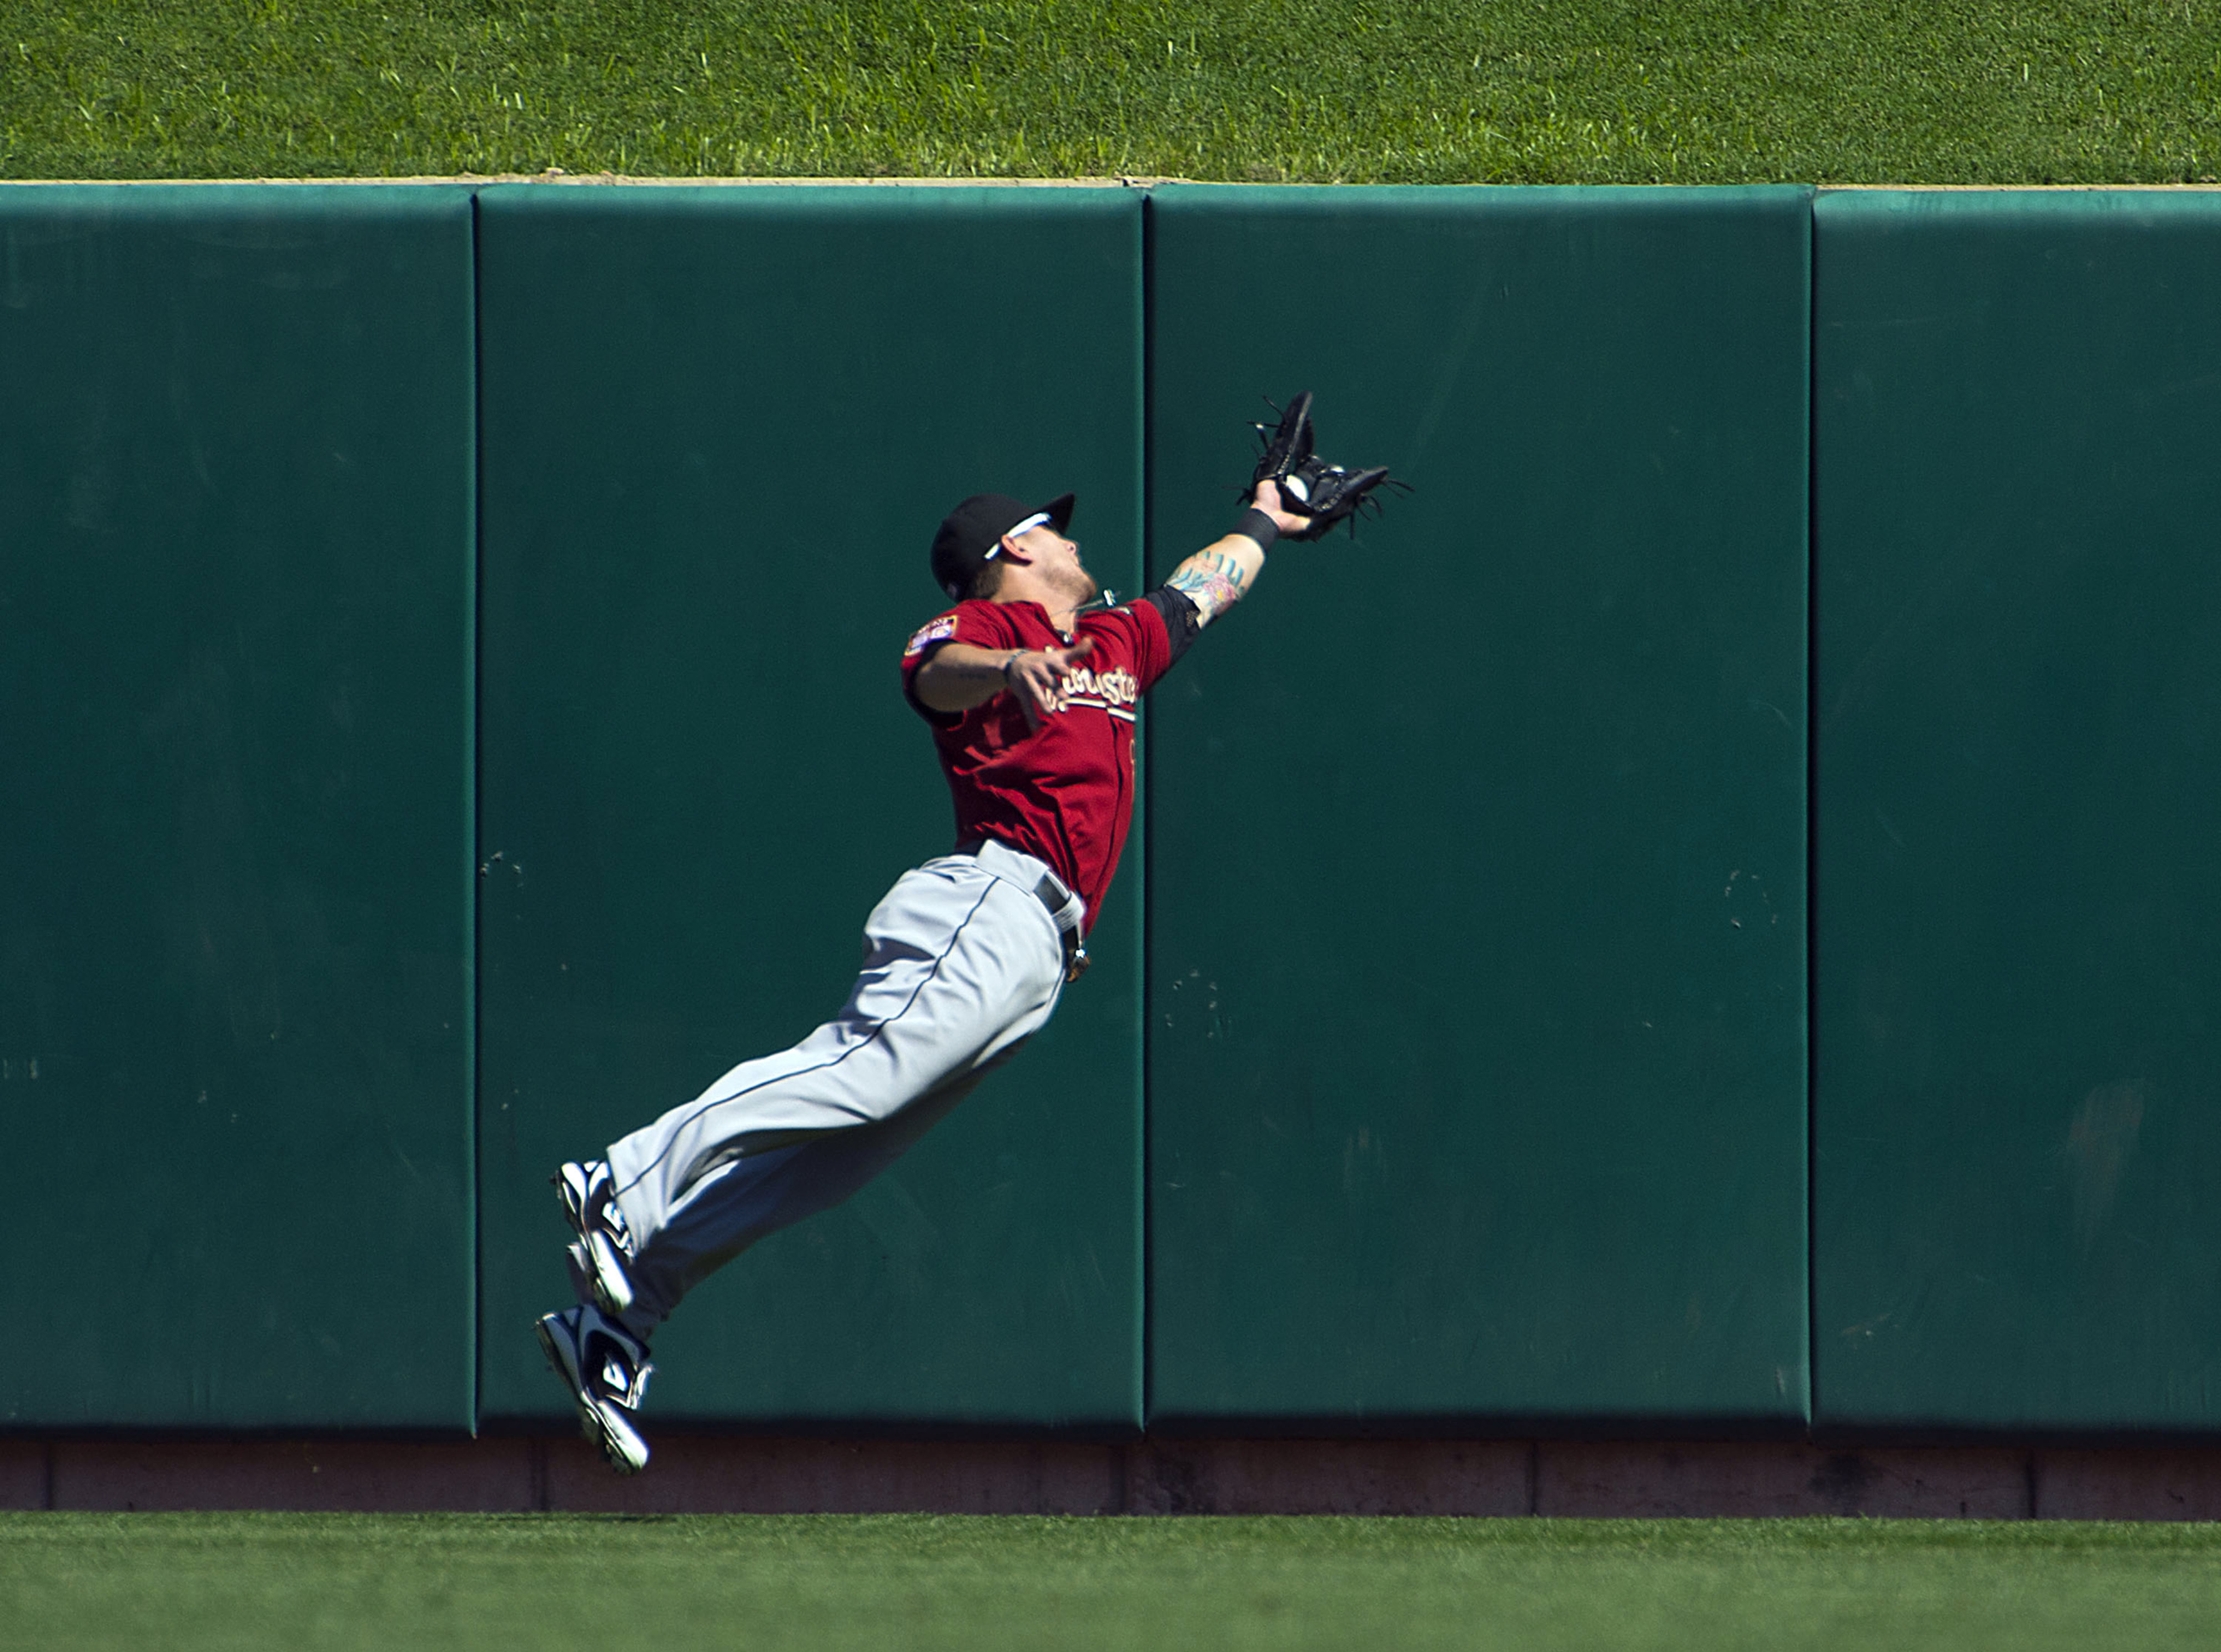 You remember this catch